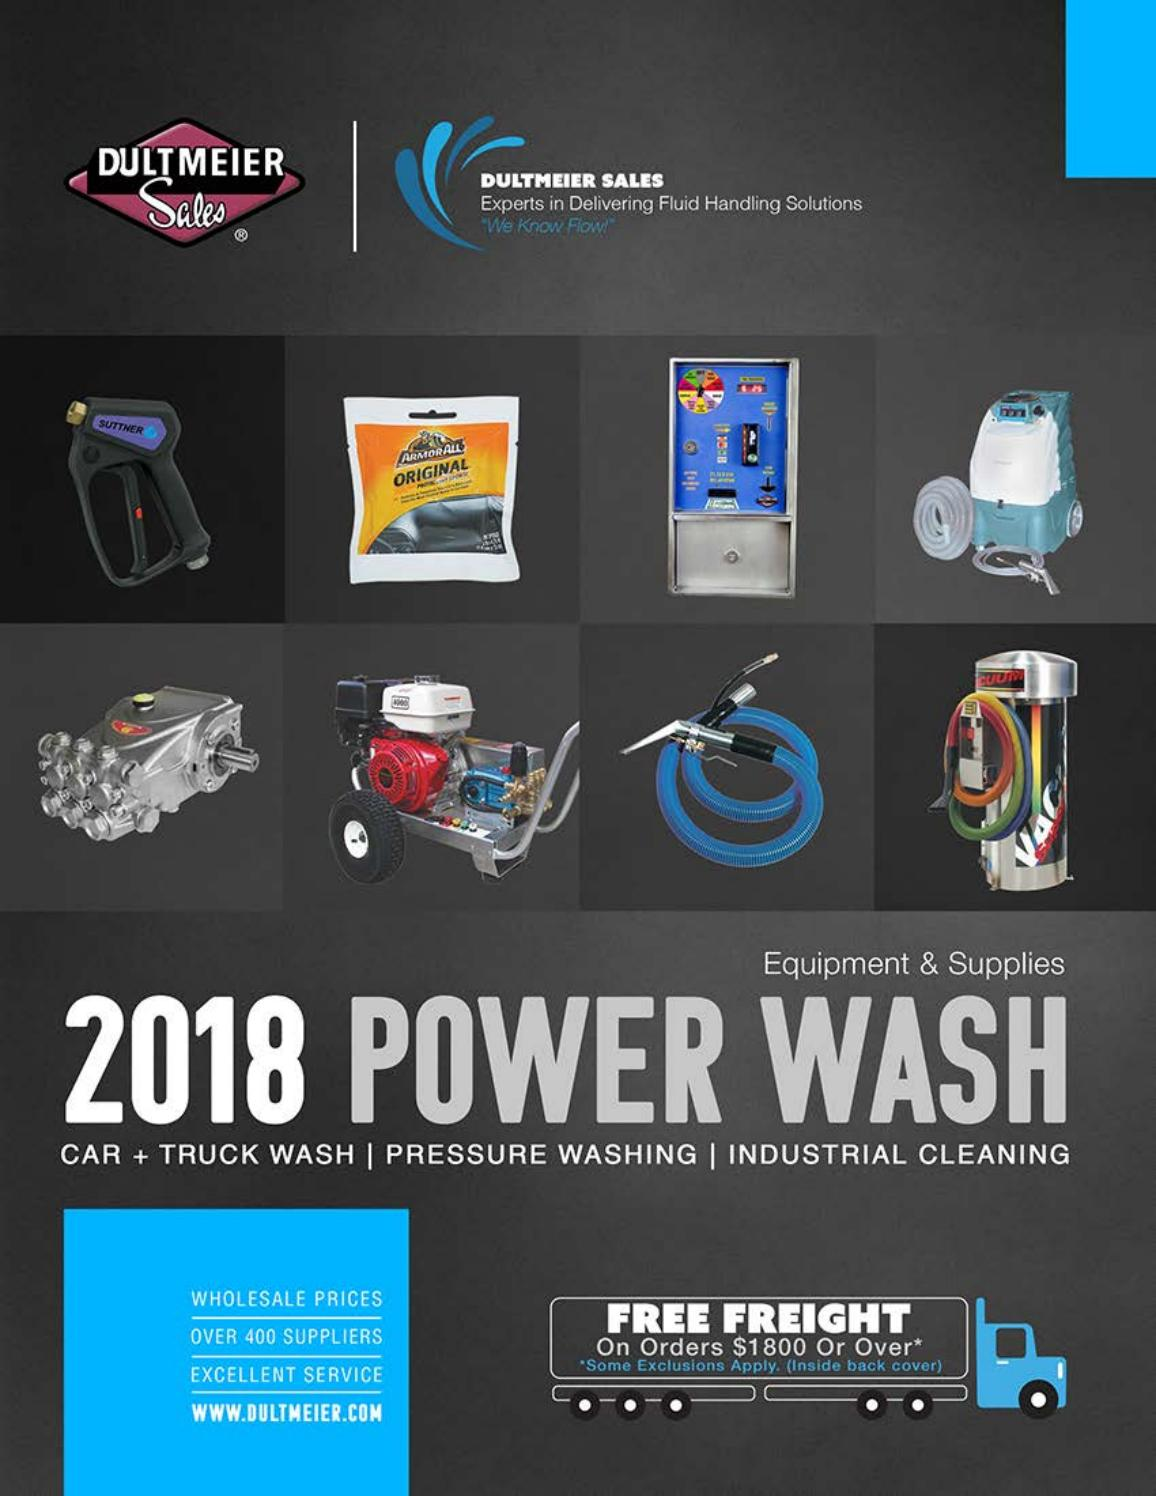 Dultmeier Sales 2018 Carwash Equipment And Supplies Catalog By St51 Solenoid Starter Switch Wiring Diagram Issuu